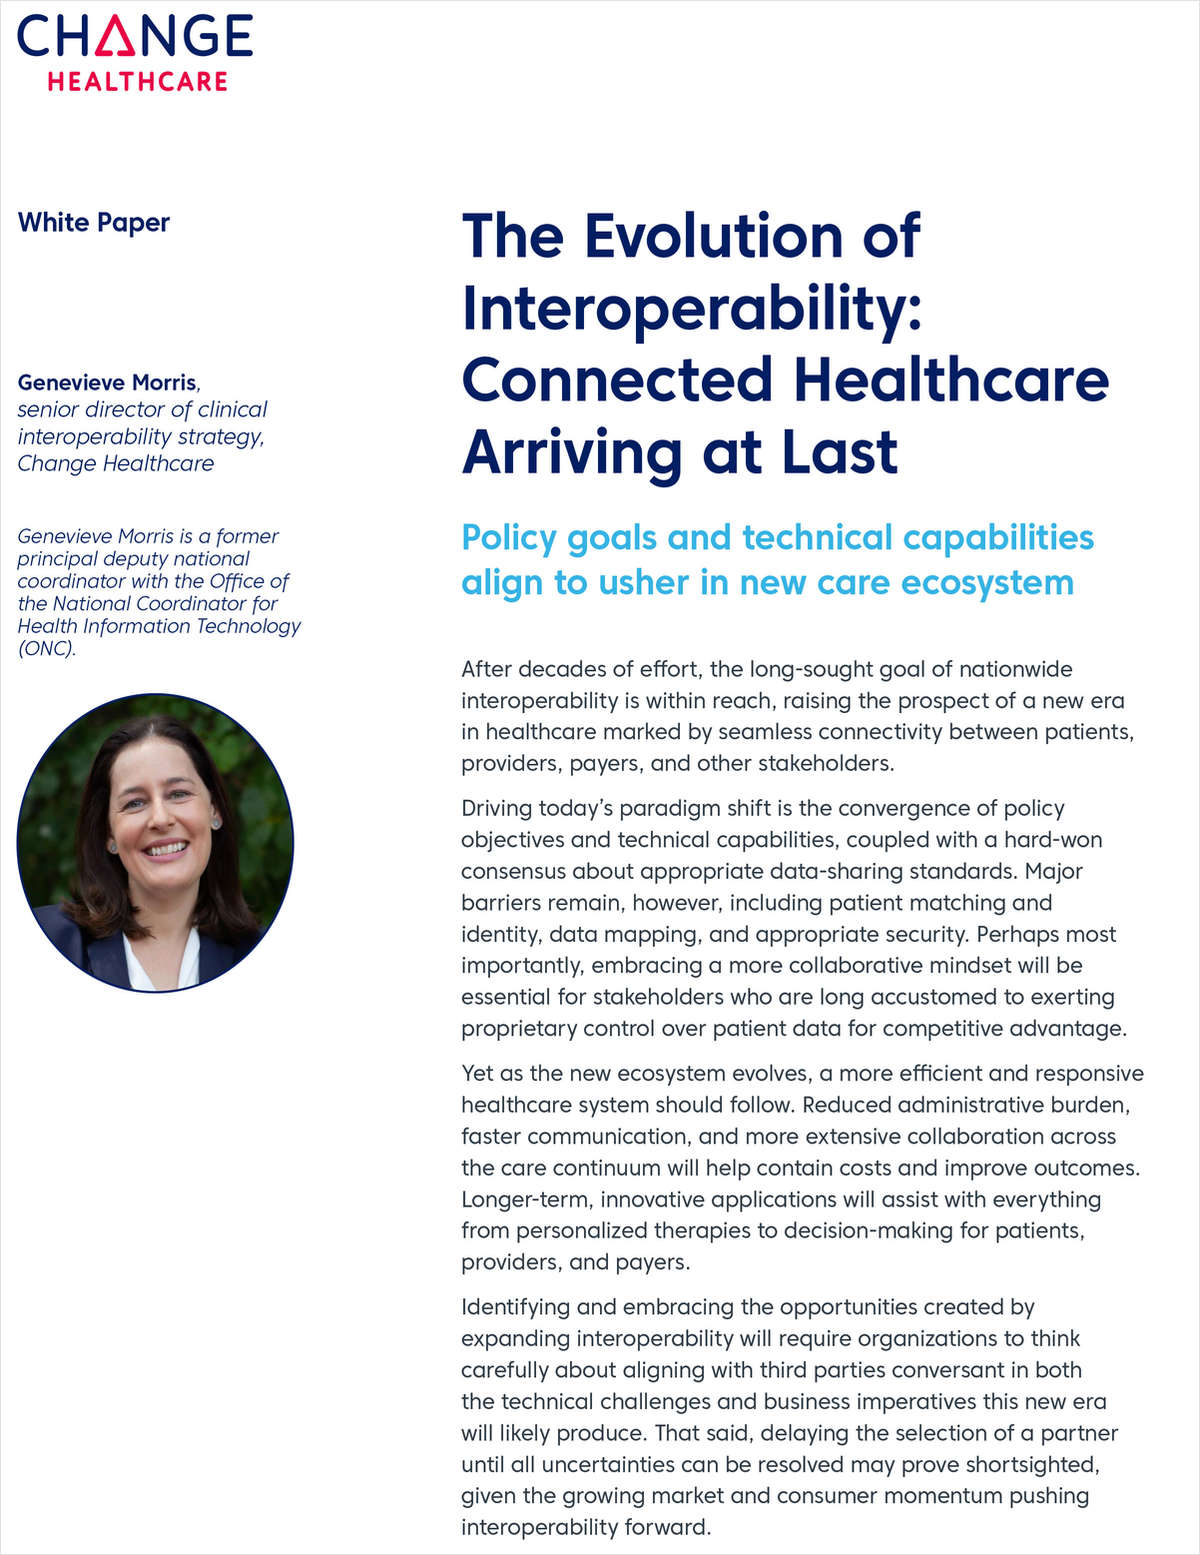 The Evolution of Interoperability: Connected Healthcare Arriving at Last